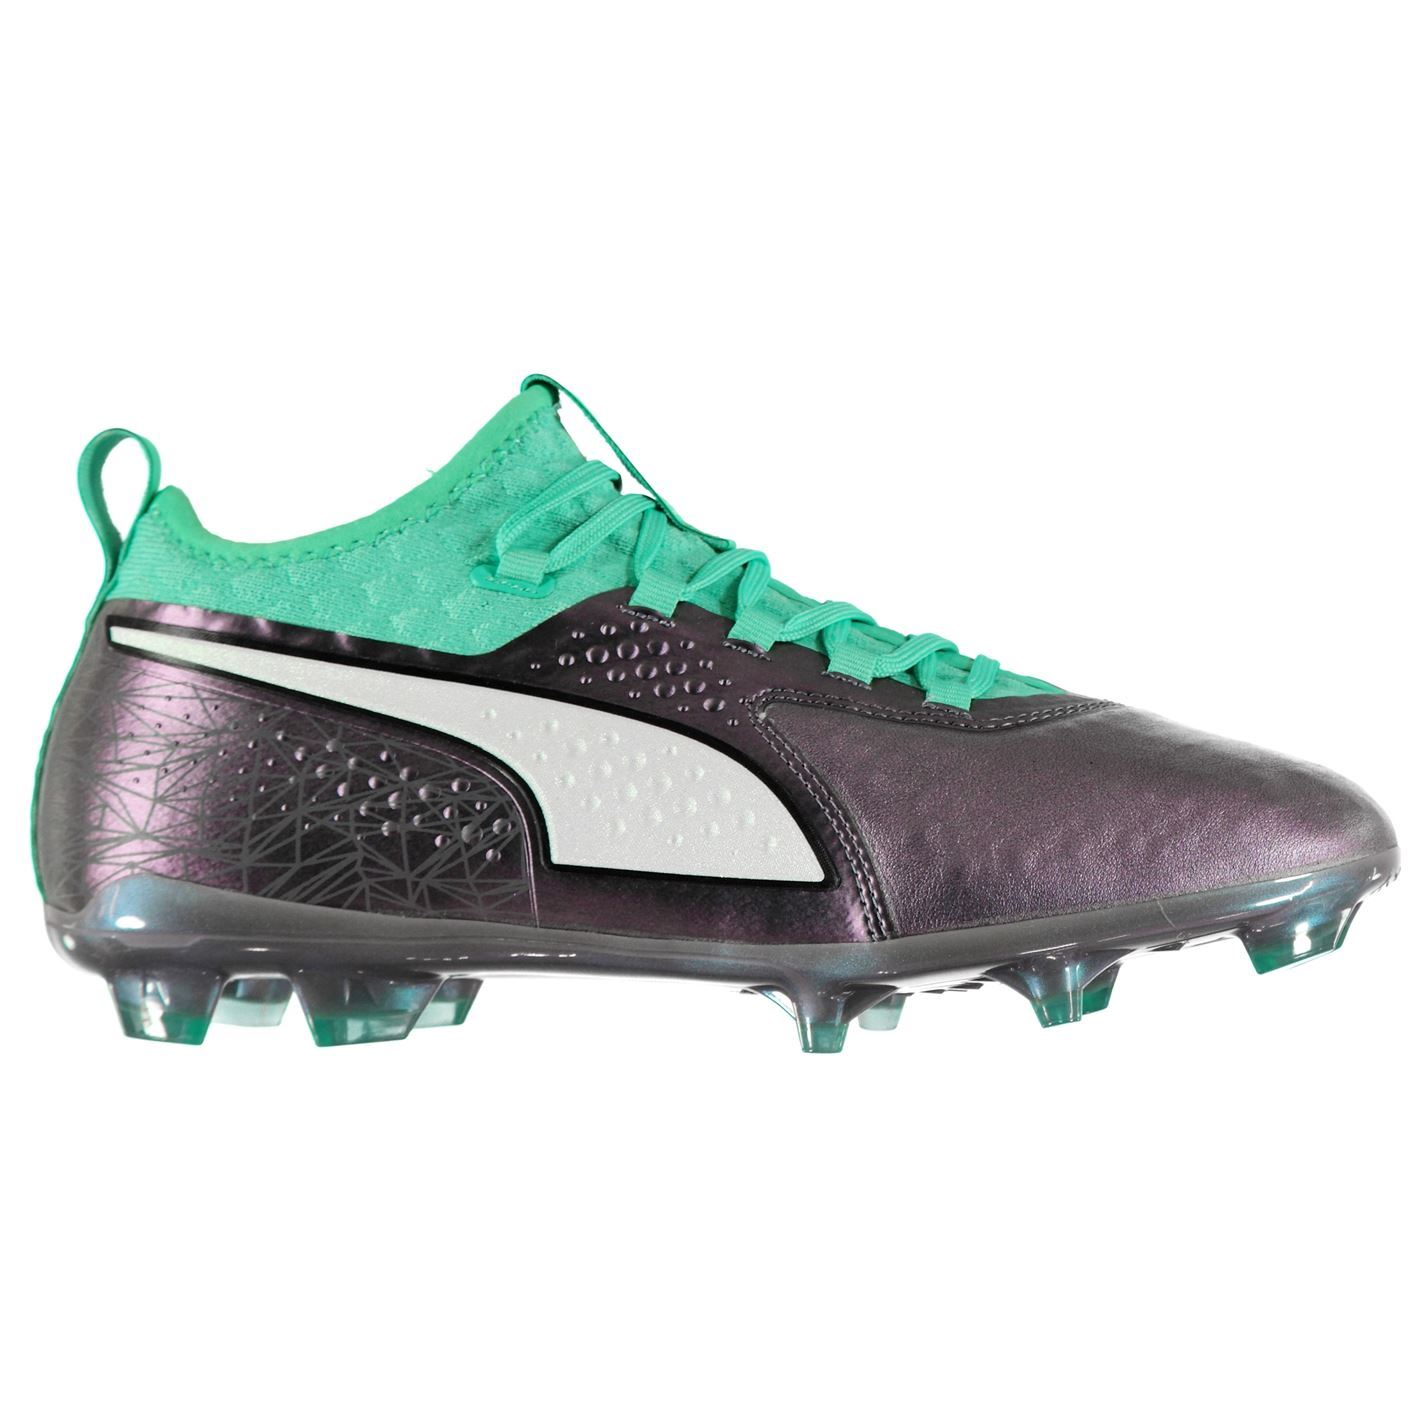 8f67a21e5999 ... Puma ONE 2 FG Firm Ground Football Boots Mens Soccer Shoes Cleats ...